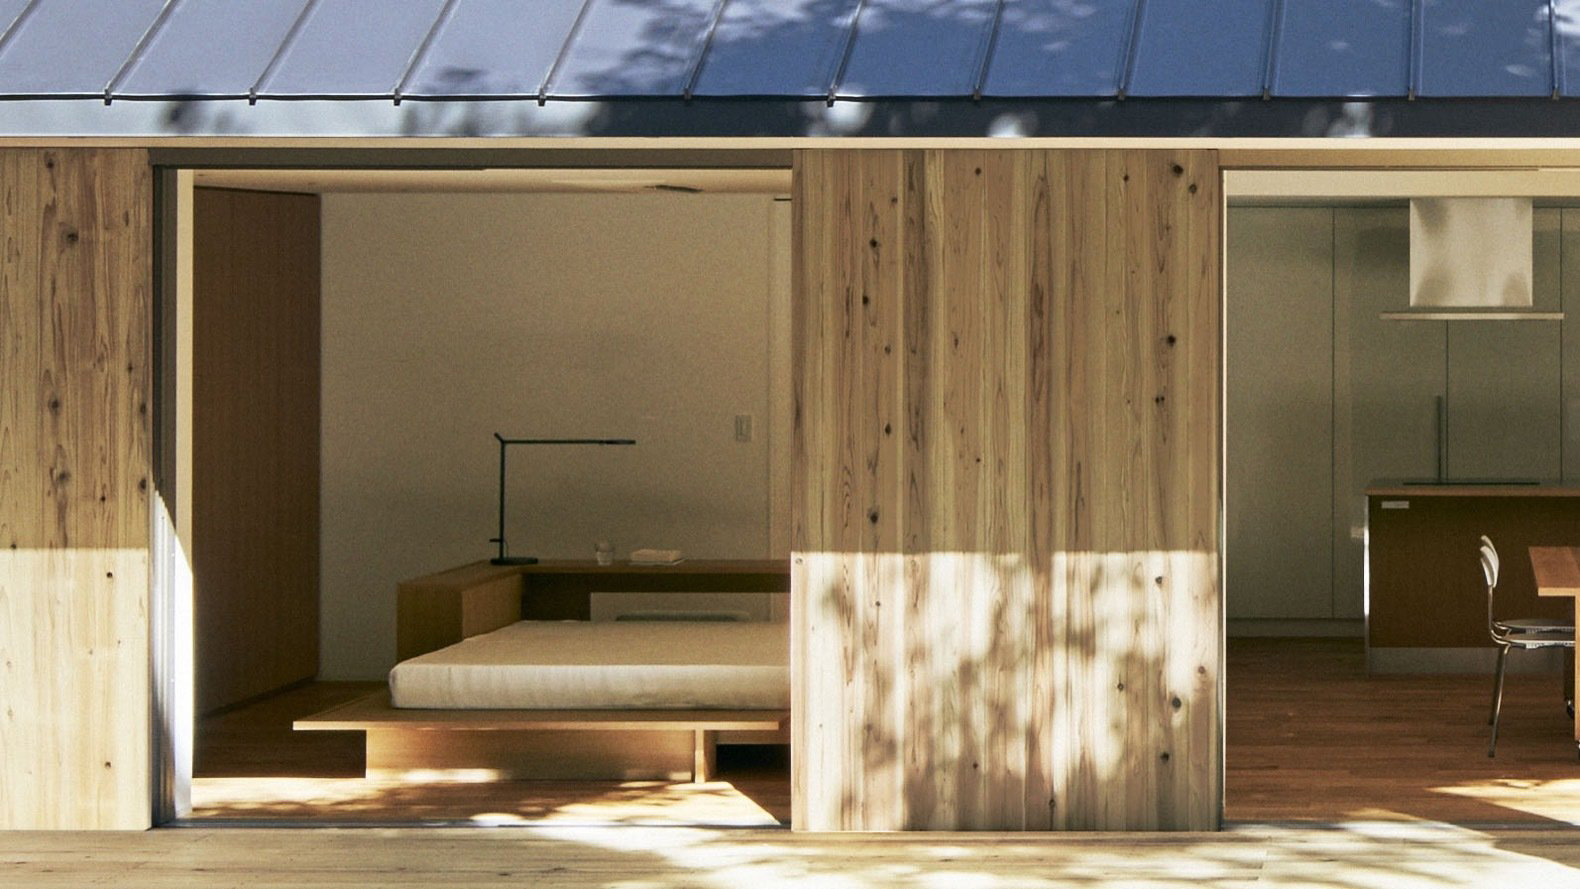 Yō no Ie House, Muji prefab